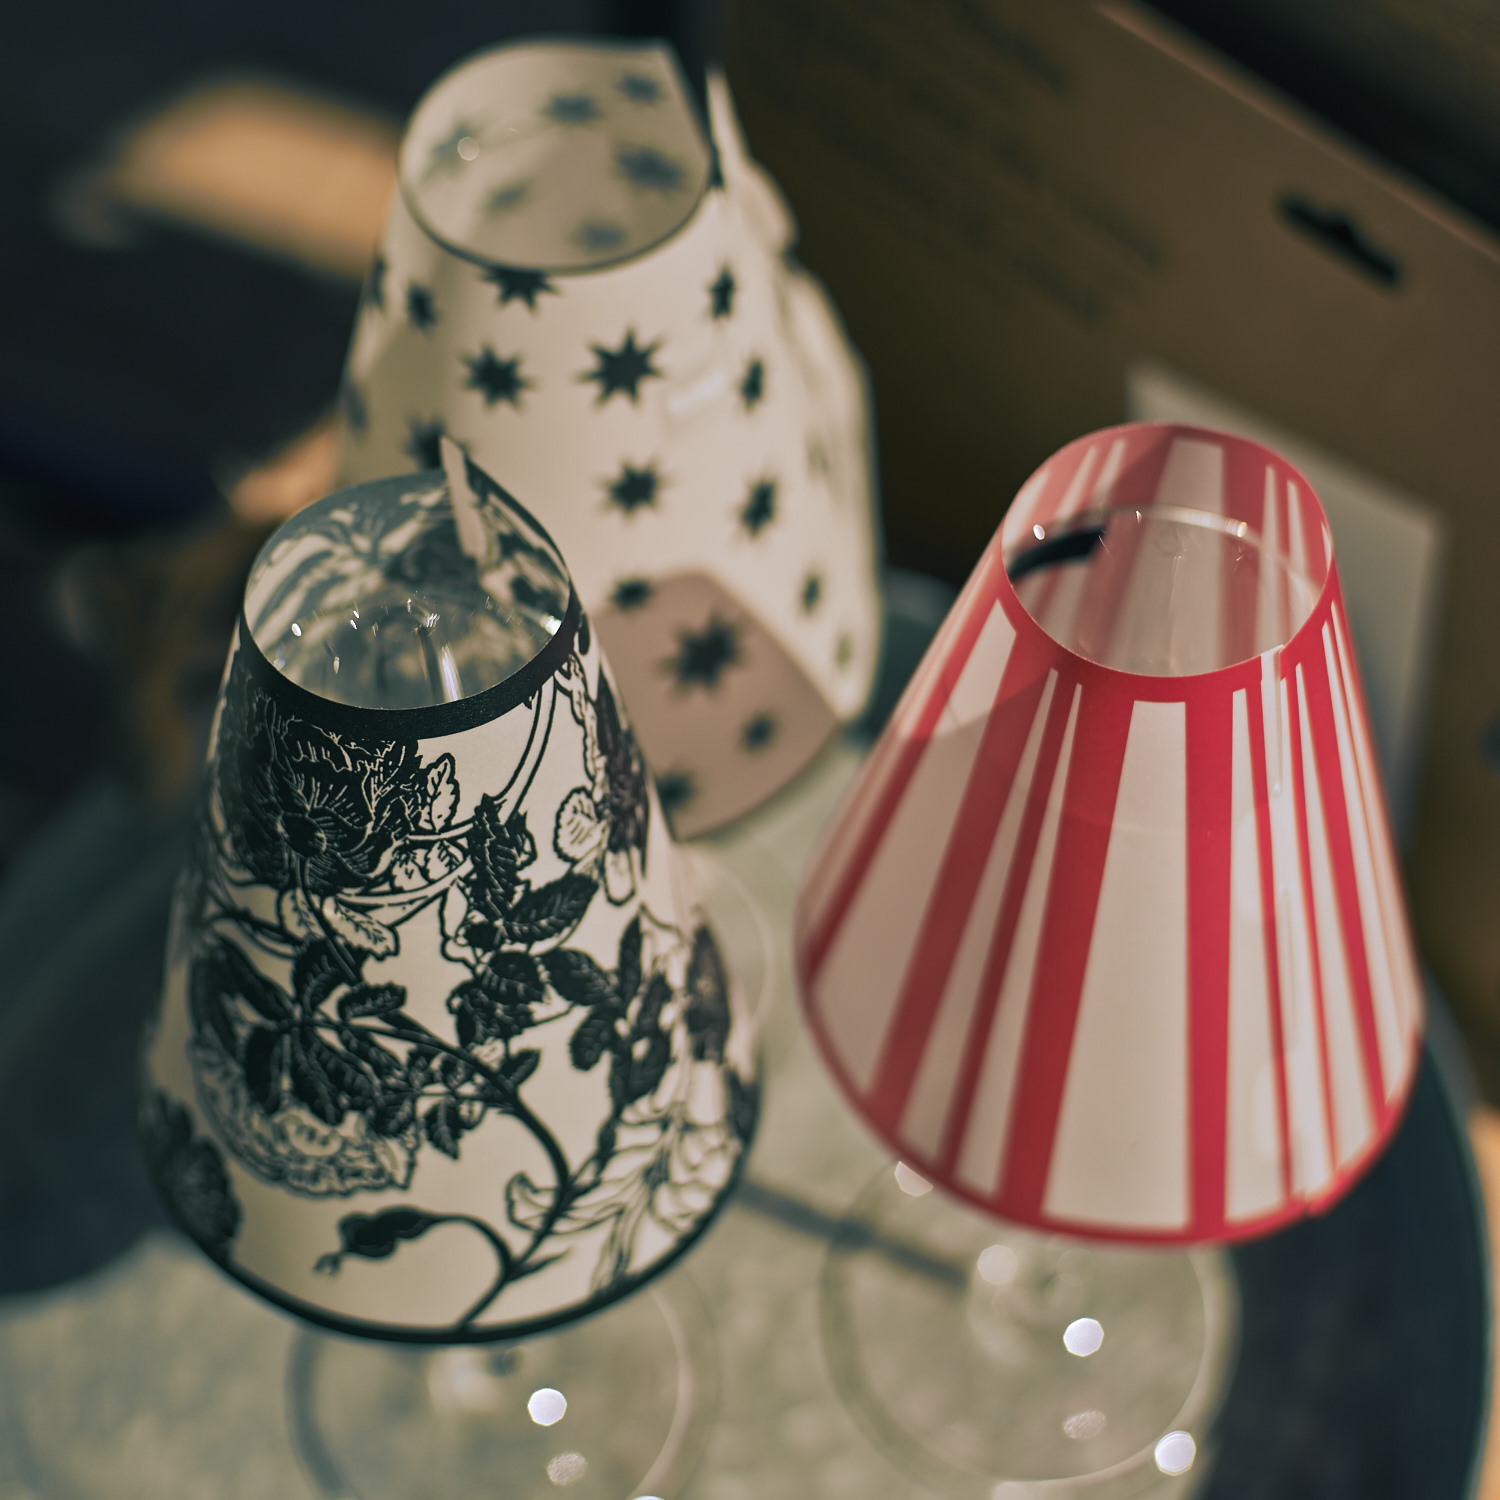 Tiny lamps decor from wine glasses